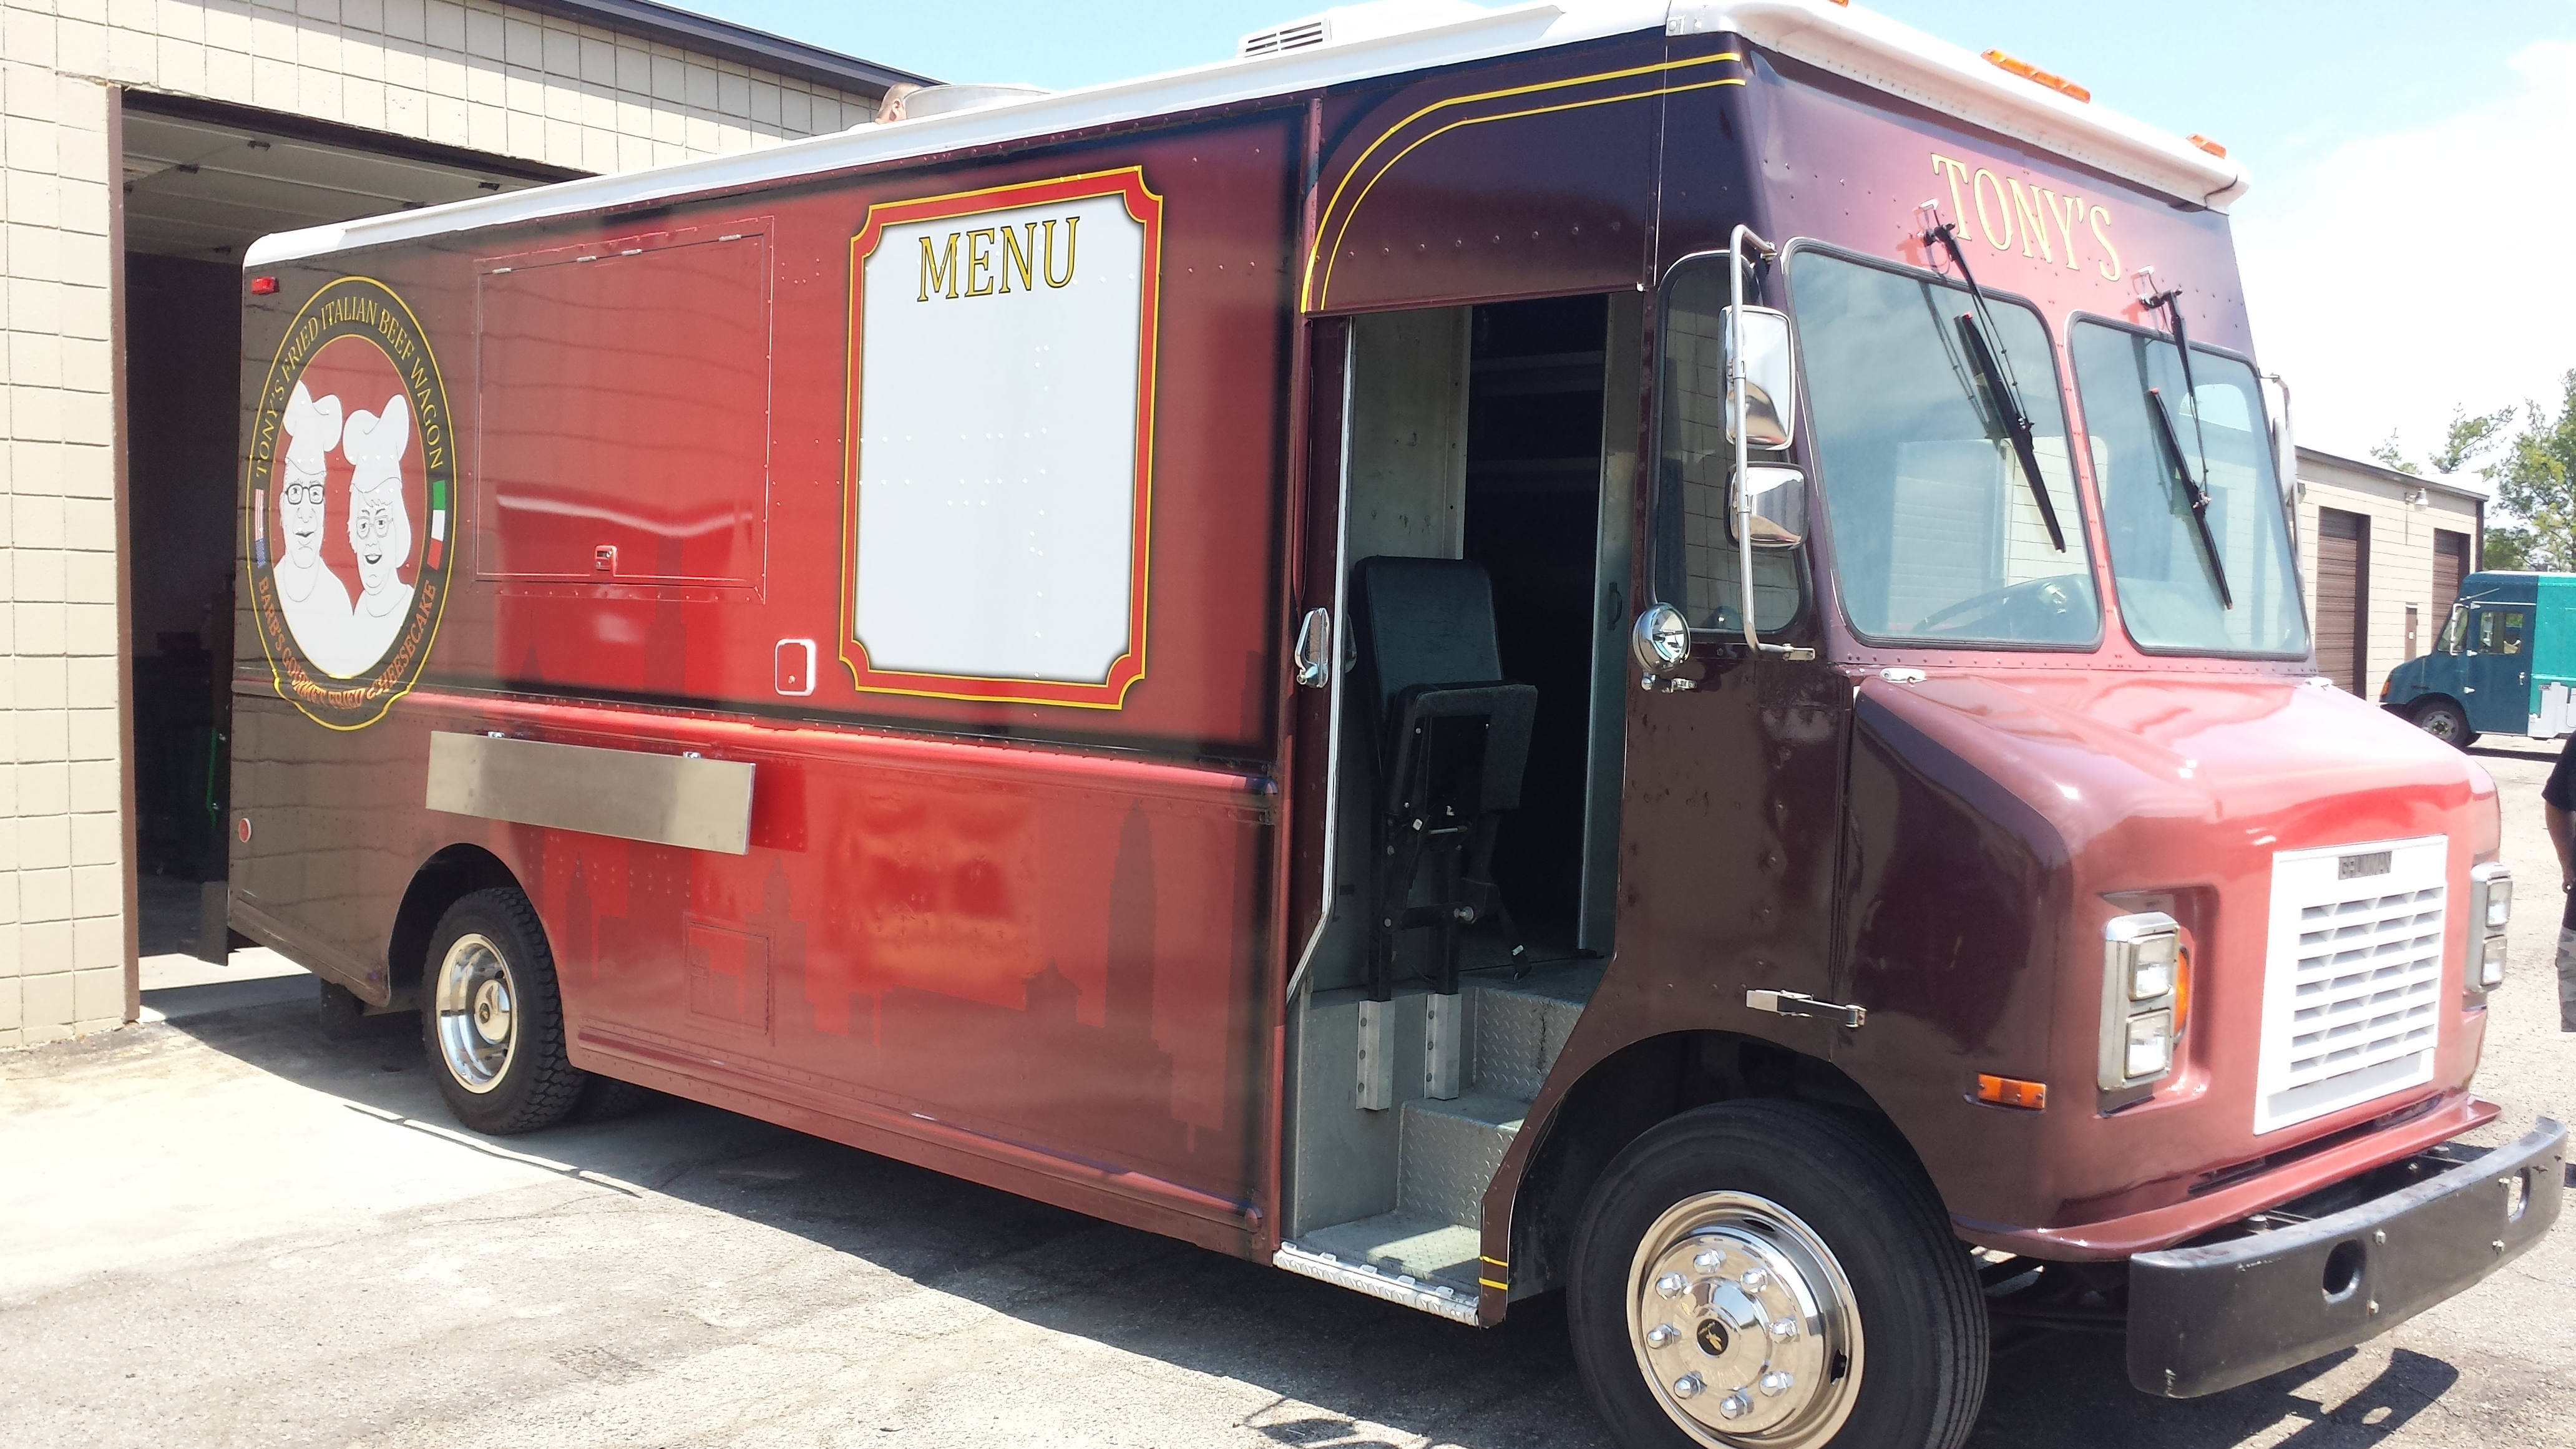 The Food Truck Shop image 4